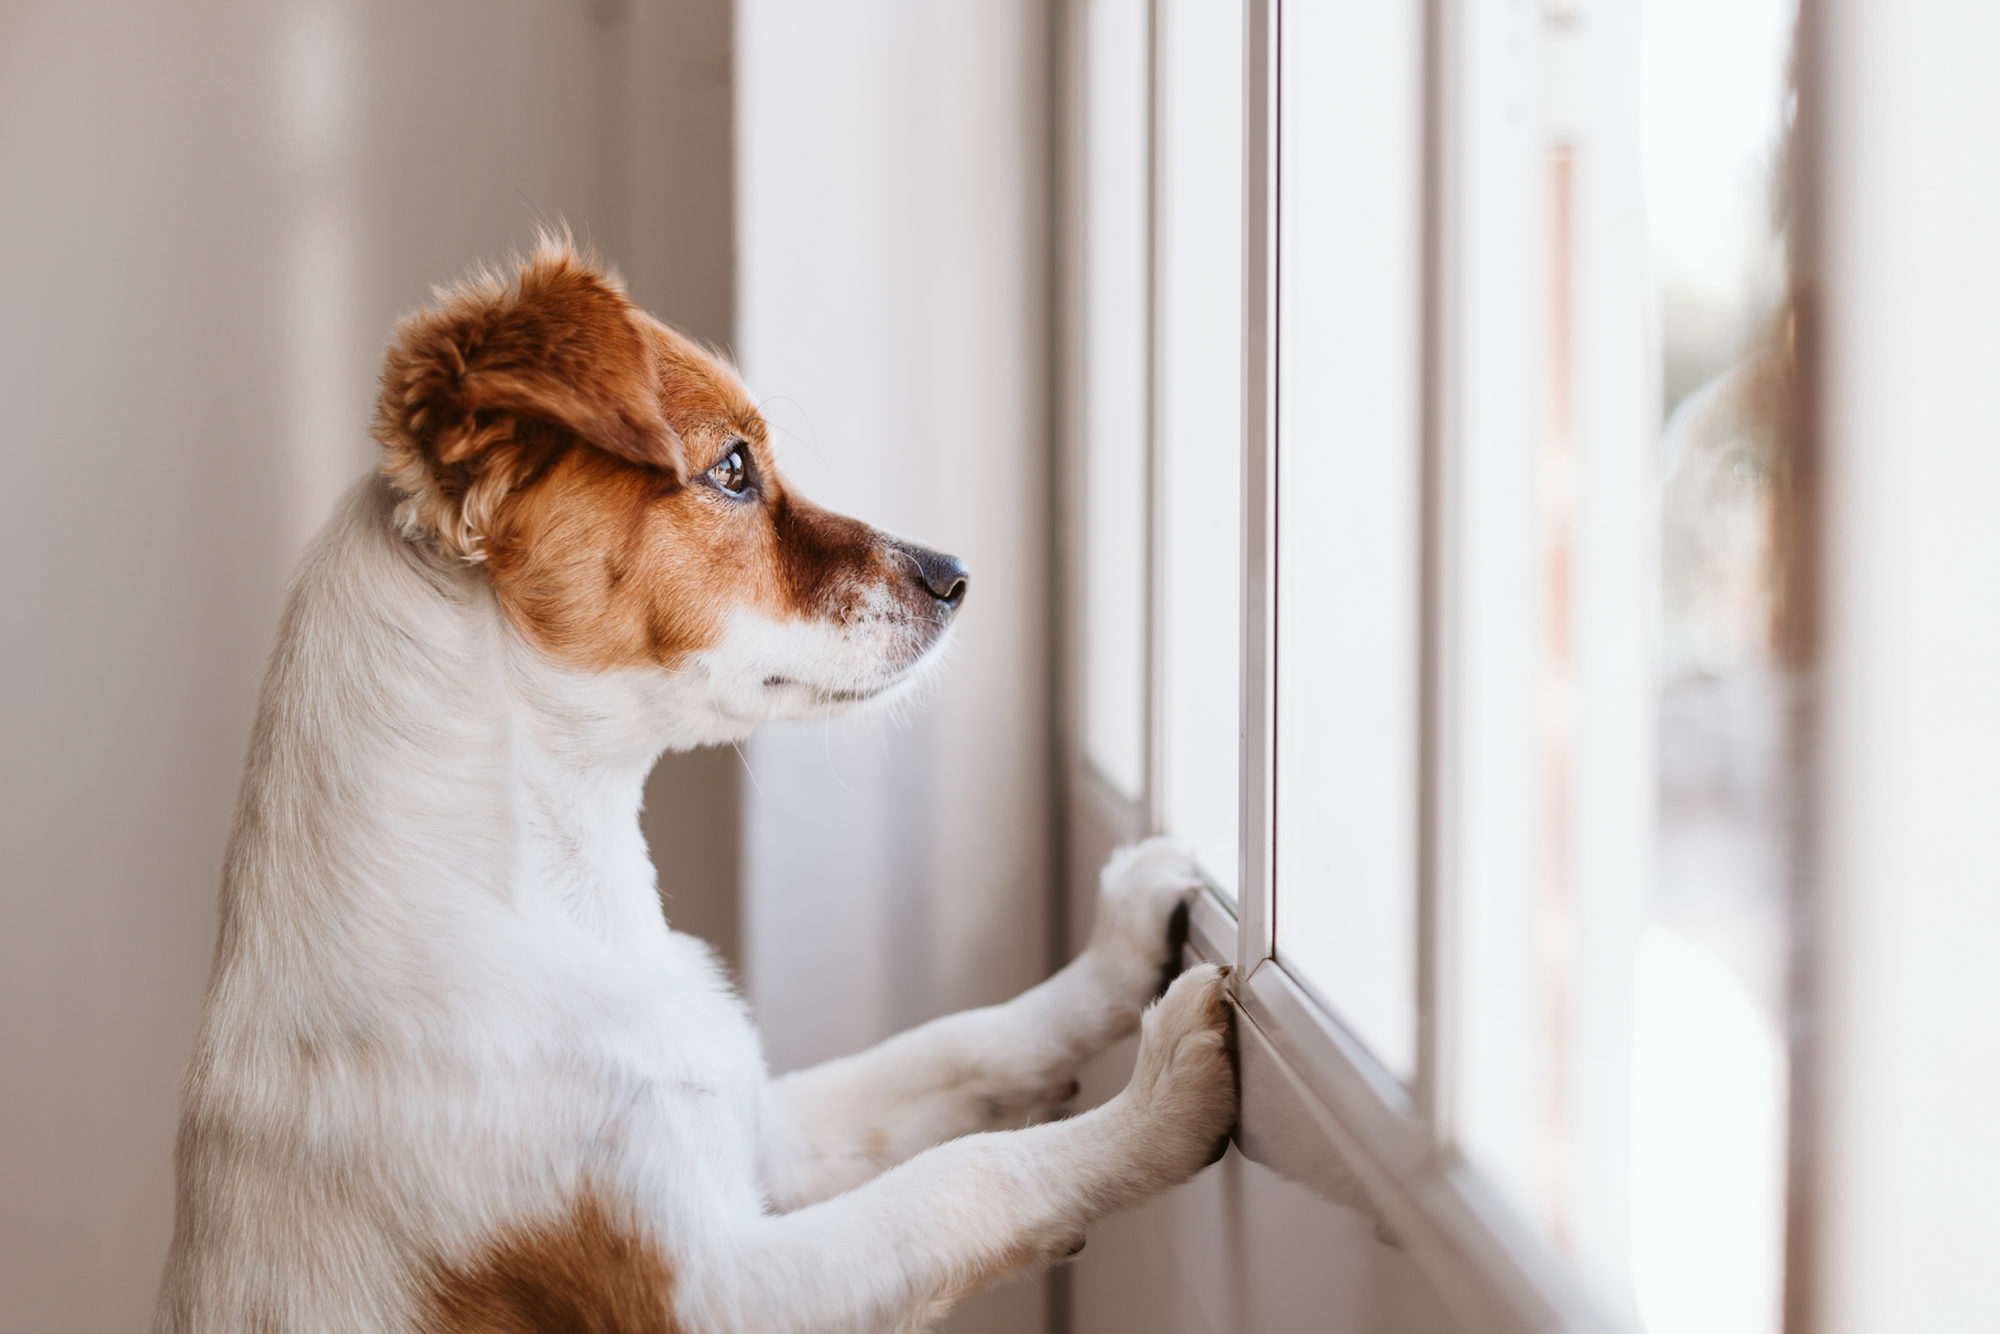 Dog standing on two legs and looking out the window